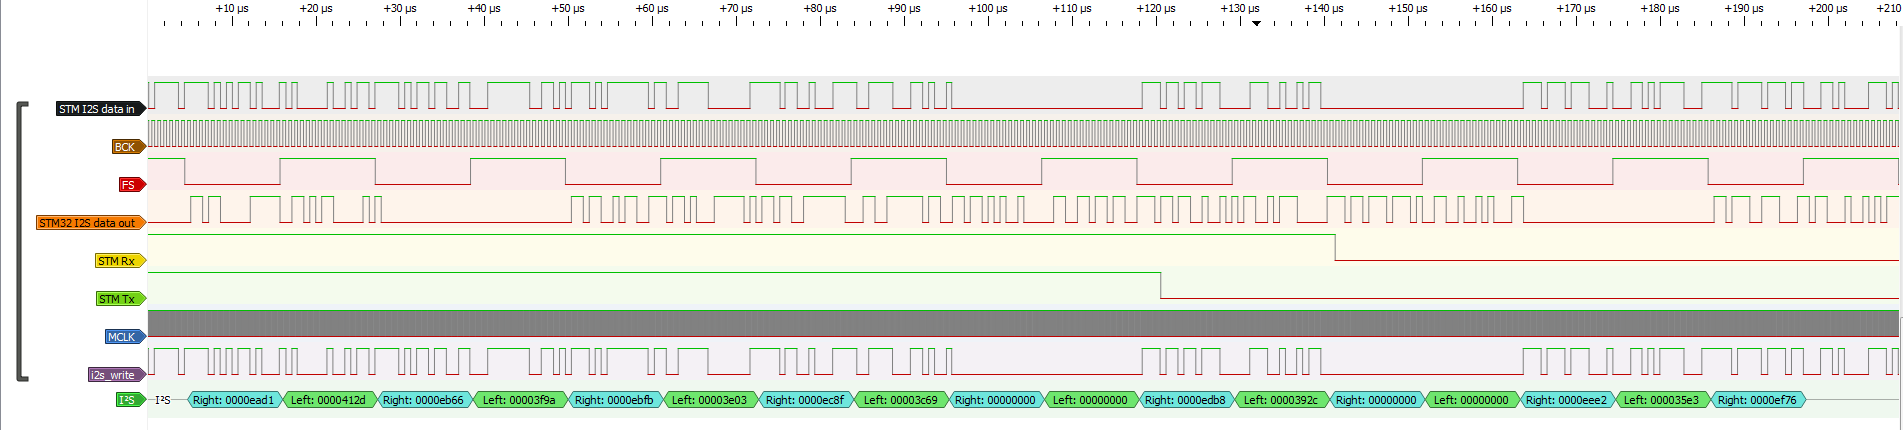 ESP32 I2S in slave mode with STM32 I2S clocked at 11.3 MHz from own PLL.png